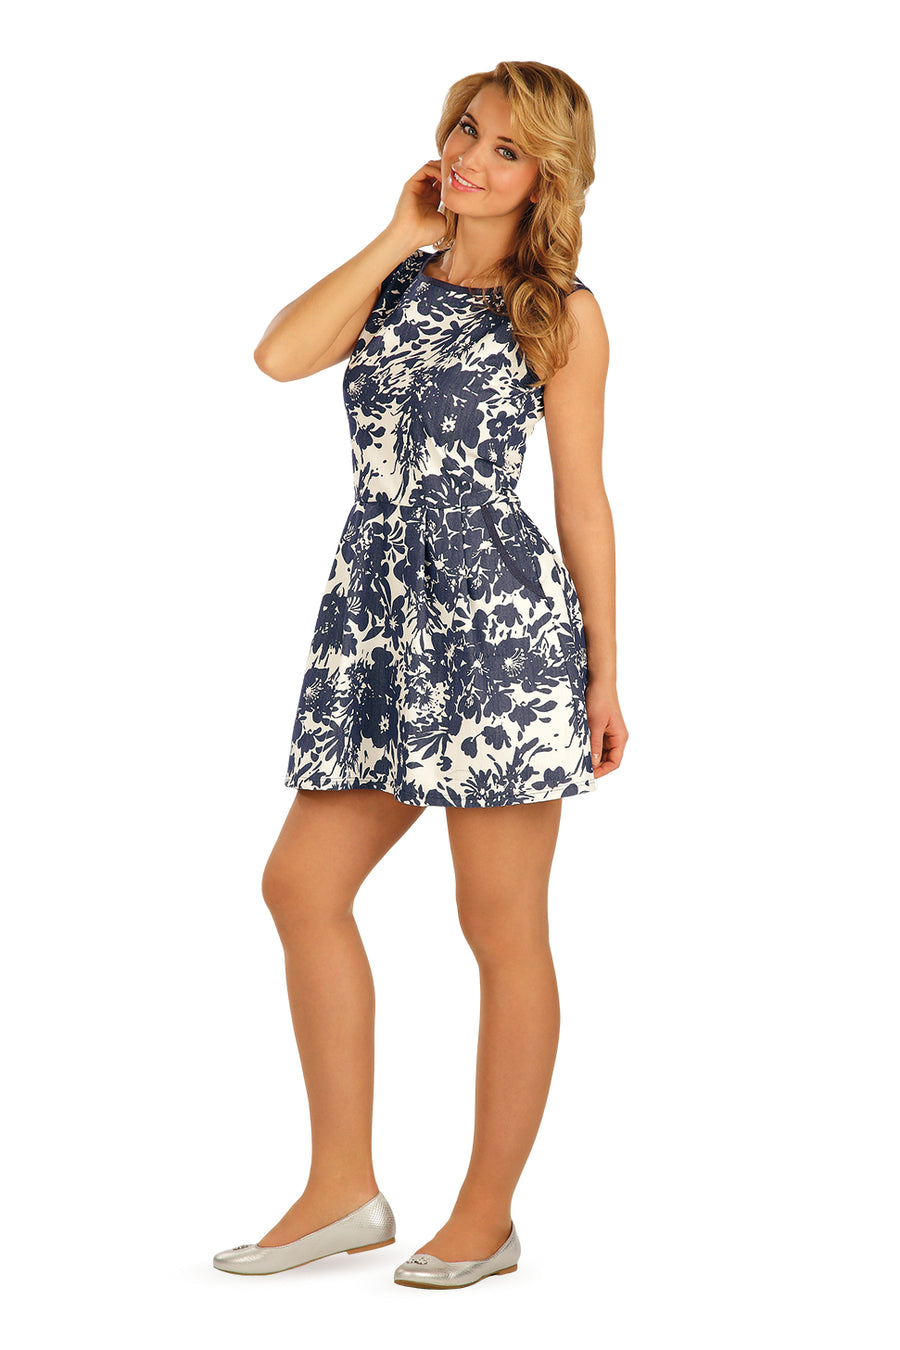 Sleeveless Dress With Blue Flower Print - onelike